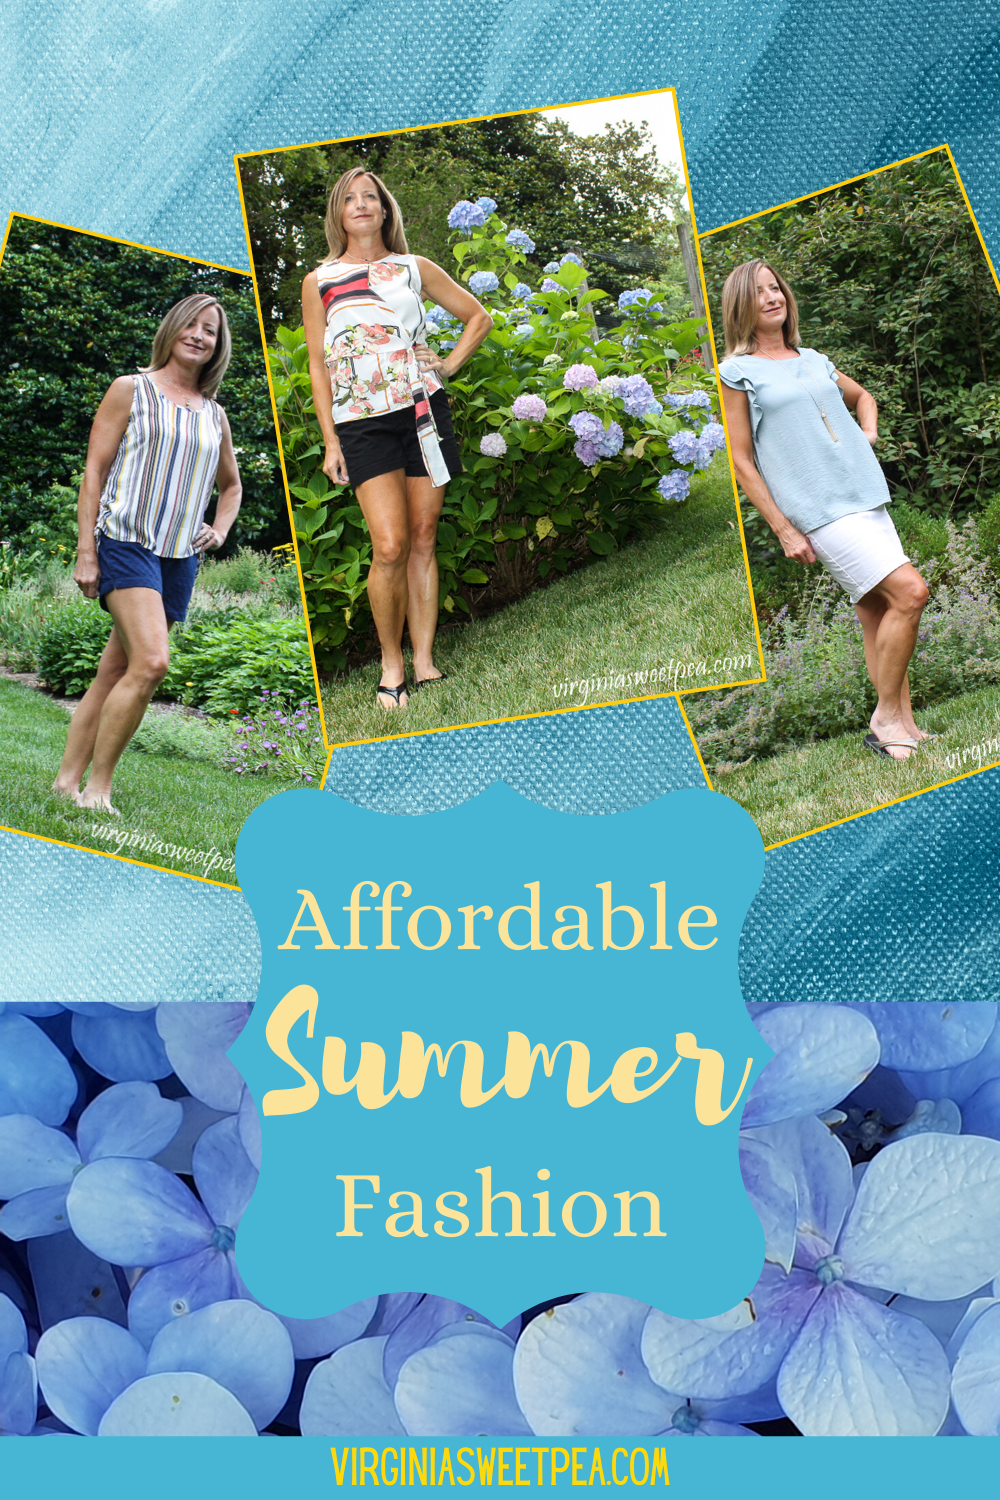 Affordable Summer Fashion - Cute styles don't have to break the bank. See how I paired tops from Fashom with Old Navy shorts and skirts. #summerfashion #affordablefashion #fashom #betterasiam #oldnavy #fashionover40 #fashionover50 via @spaula